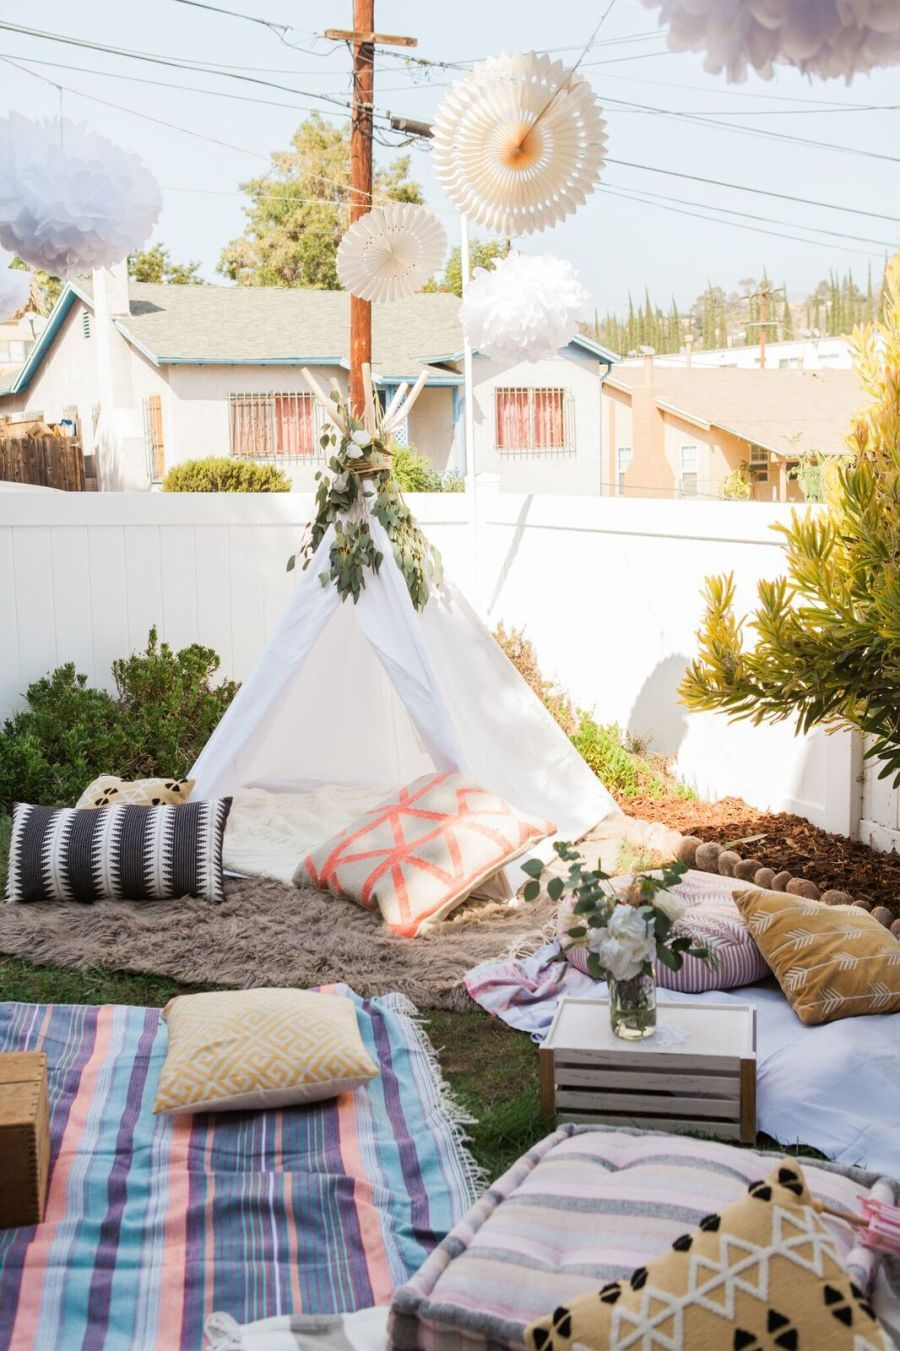 Celebrating Baby with a Bohemian Picnic Party | Bohemian Home Decor ...